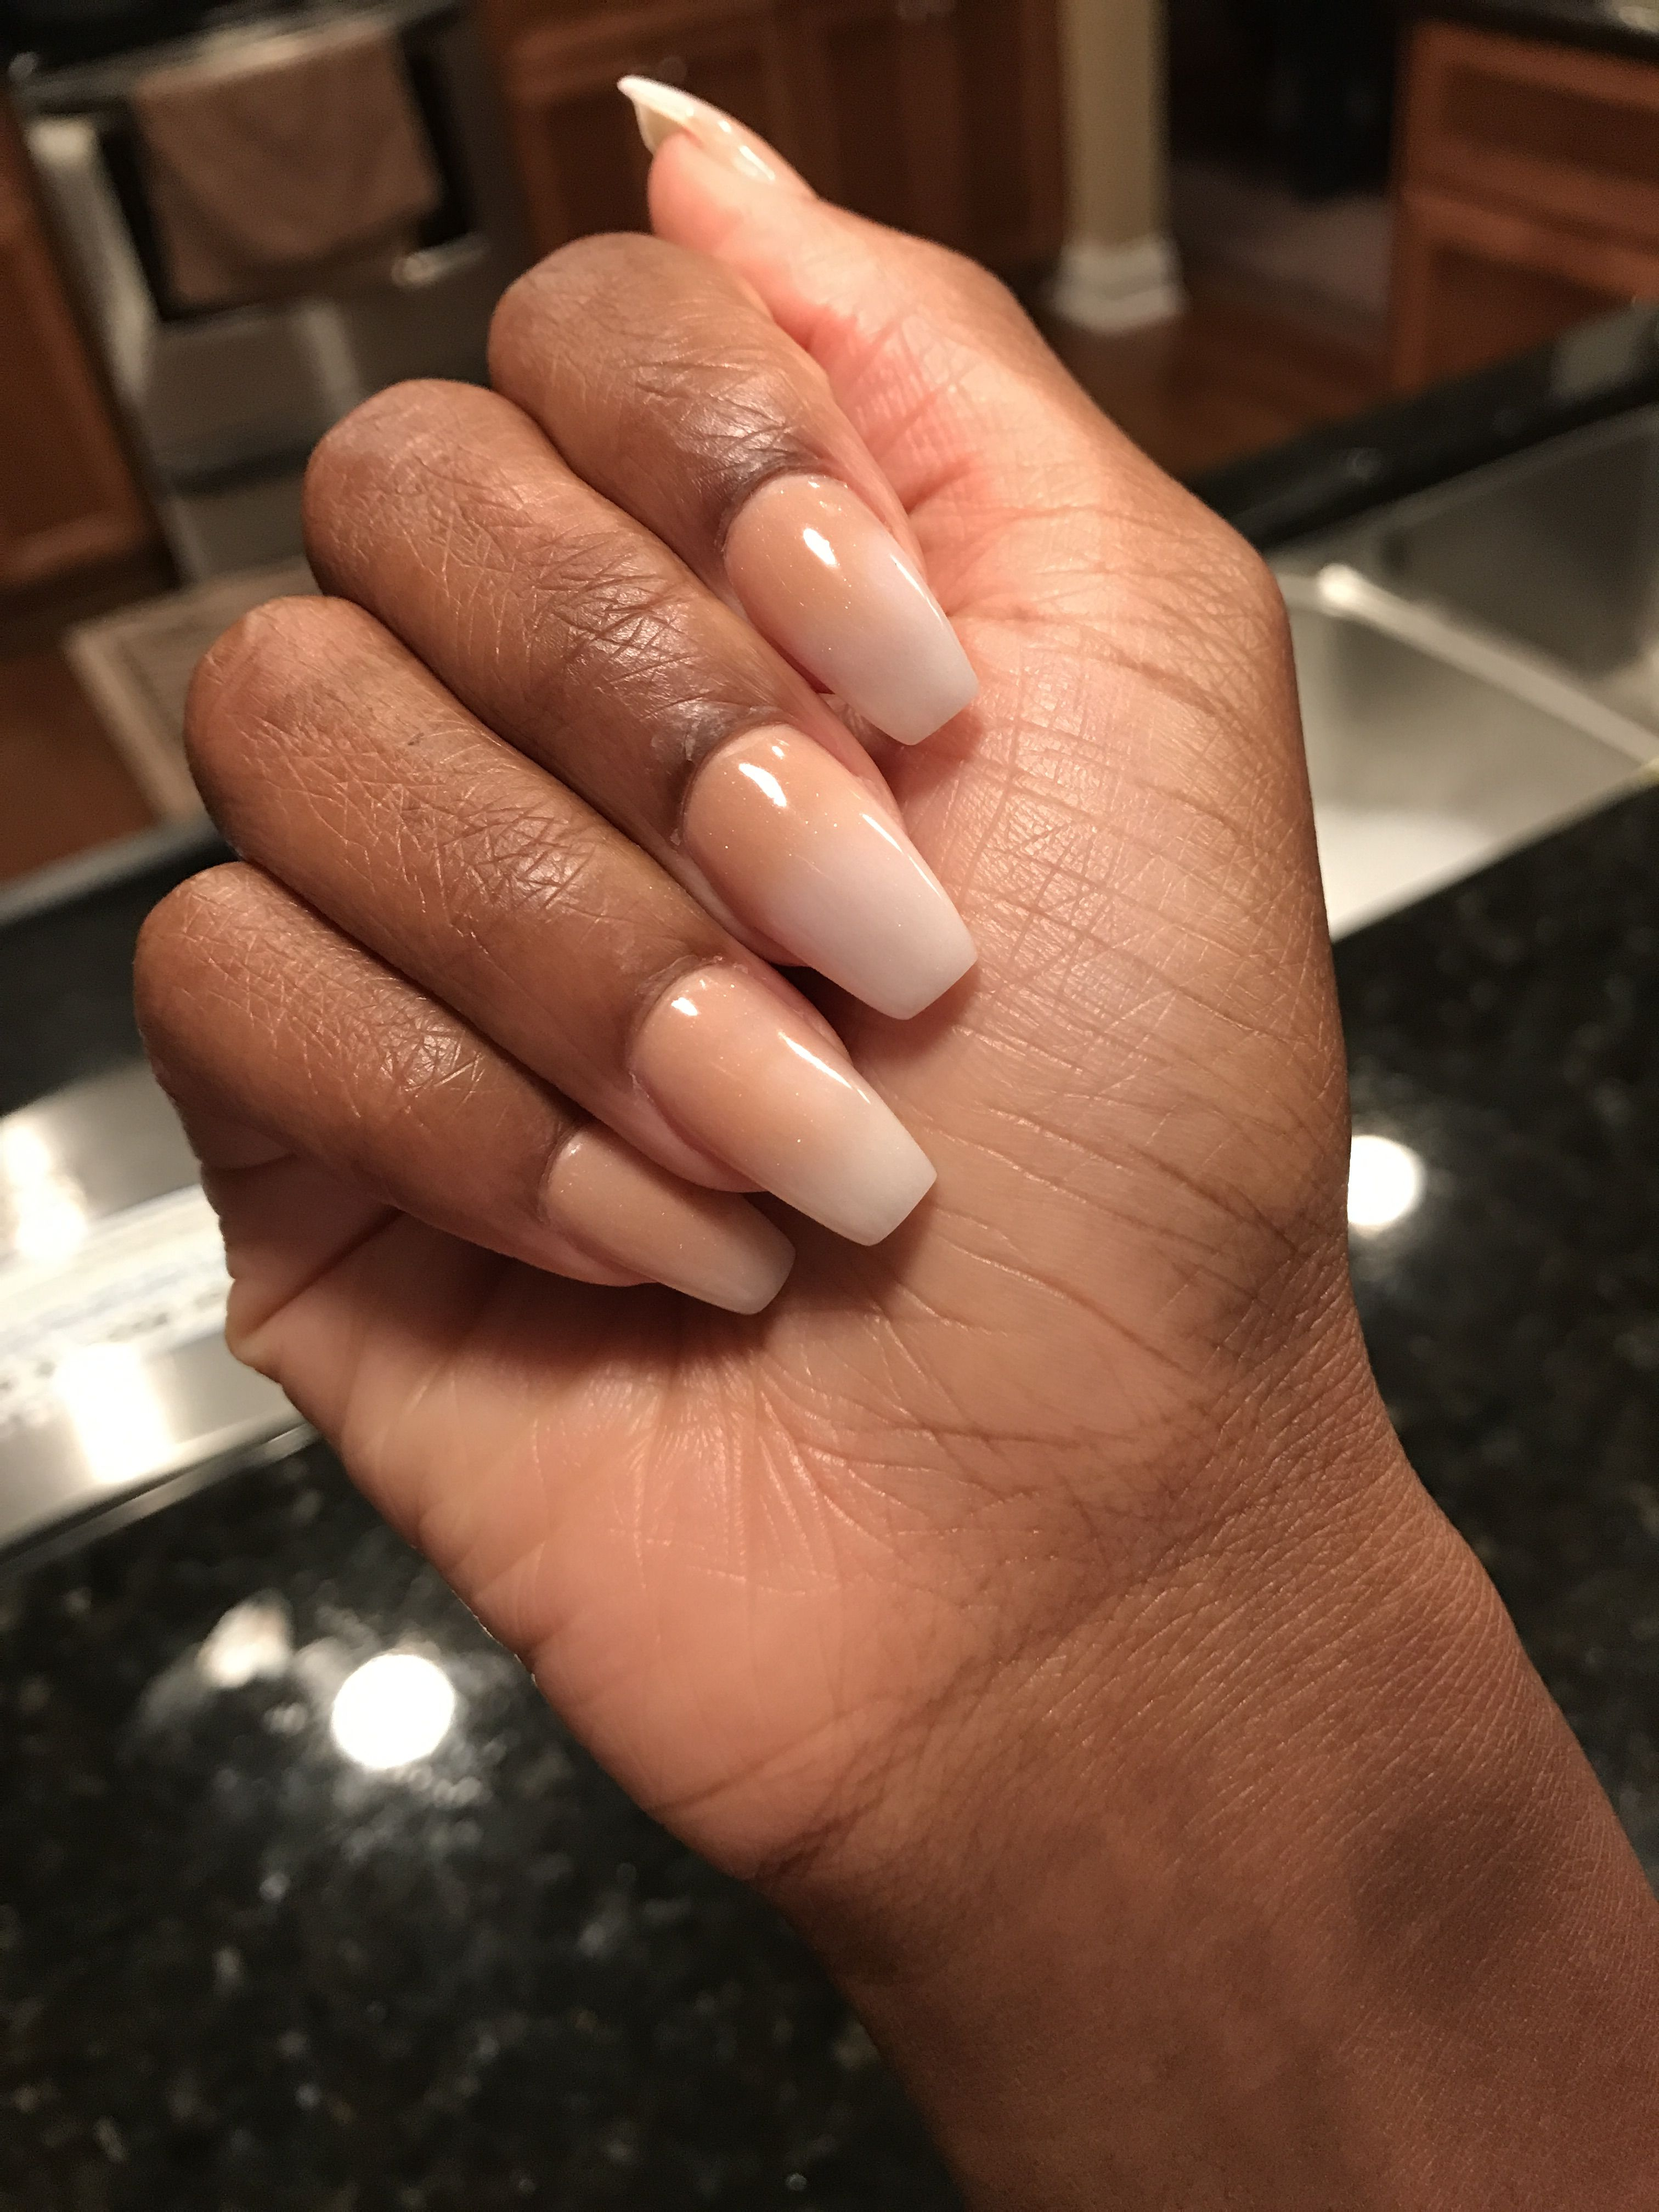 Nudeombre nails nails pinterest manicure nail stuff and